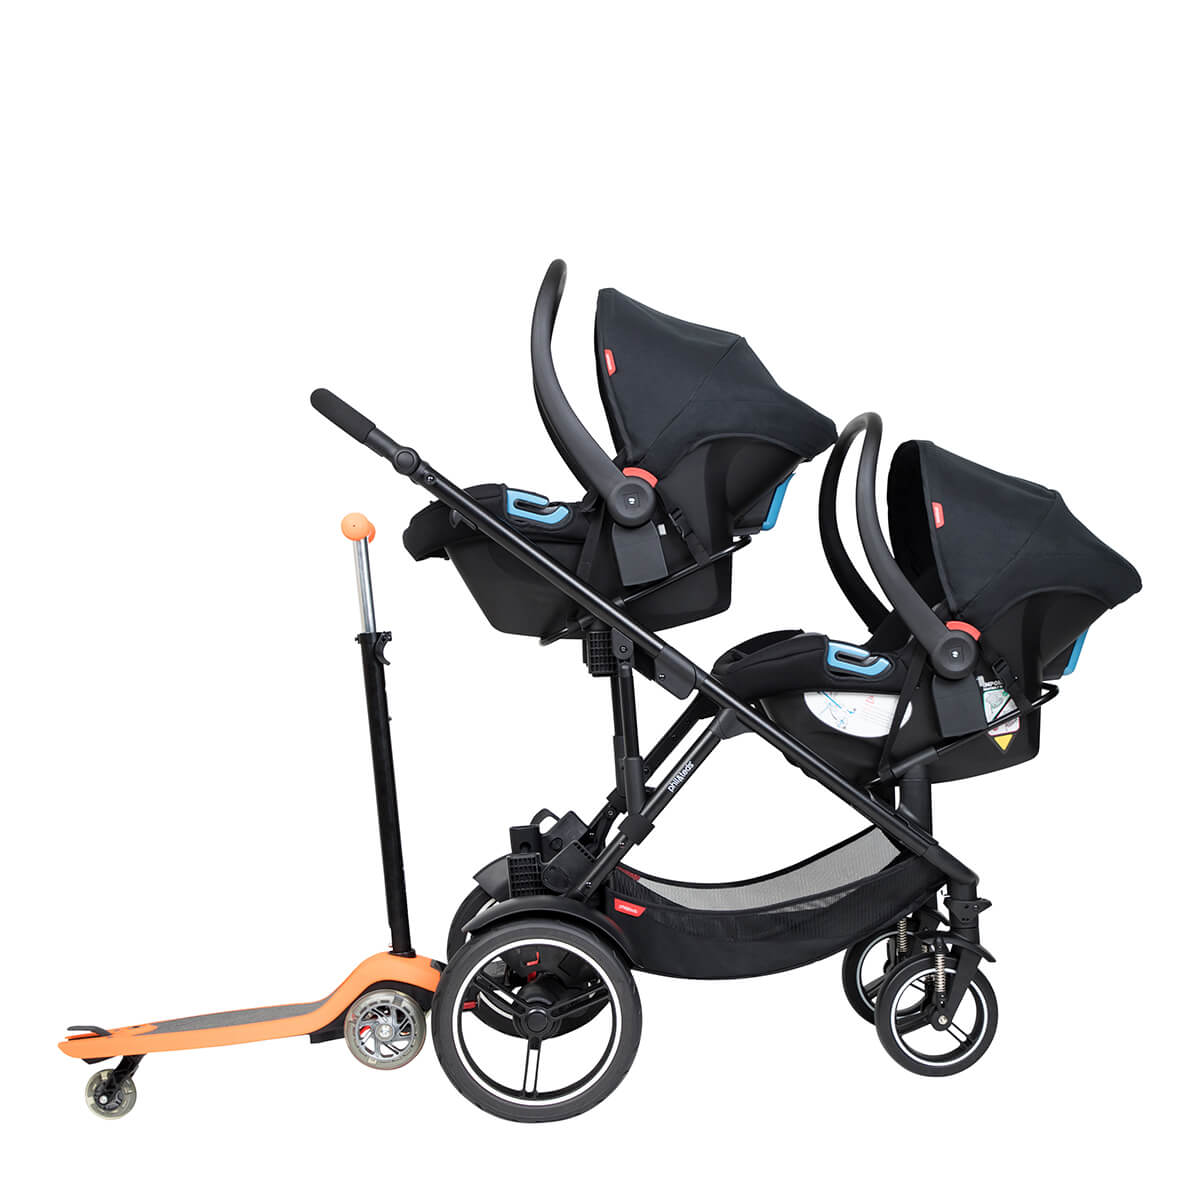 https://cdn.accentuate.io/4363393695797/19119756378165/philteds-voyager-buggy-with-double-travel-systems-and-freerider-stroller-board-in-the-rear-v1626404048468.jpg?1200x1200